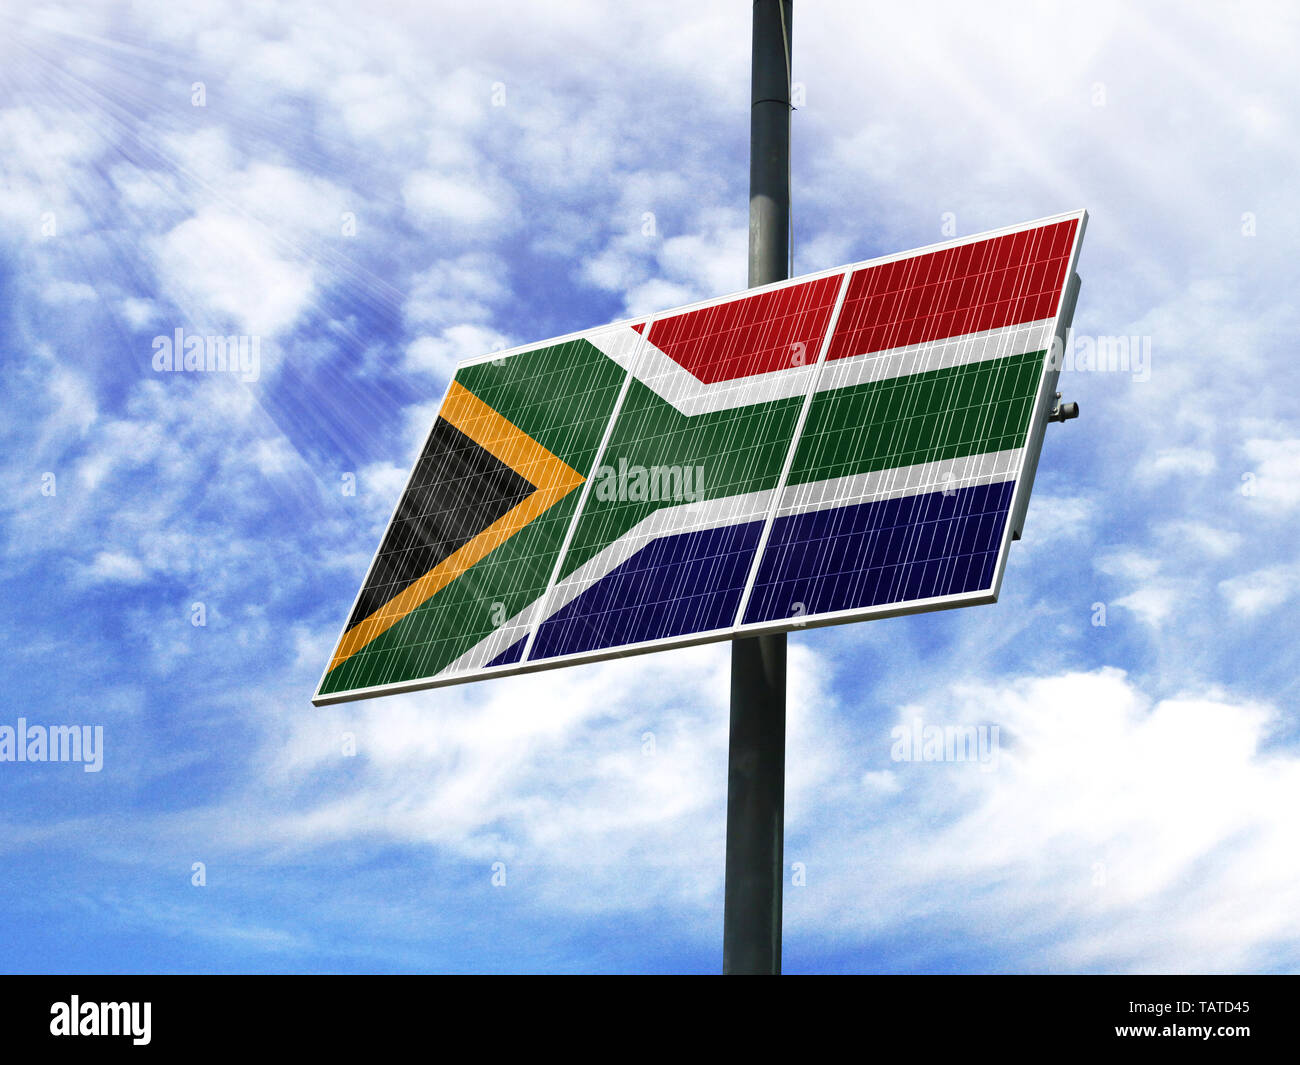 Solar panels against a blue sky with a picture of the flag of South Africa - Stock Image